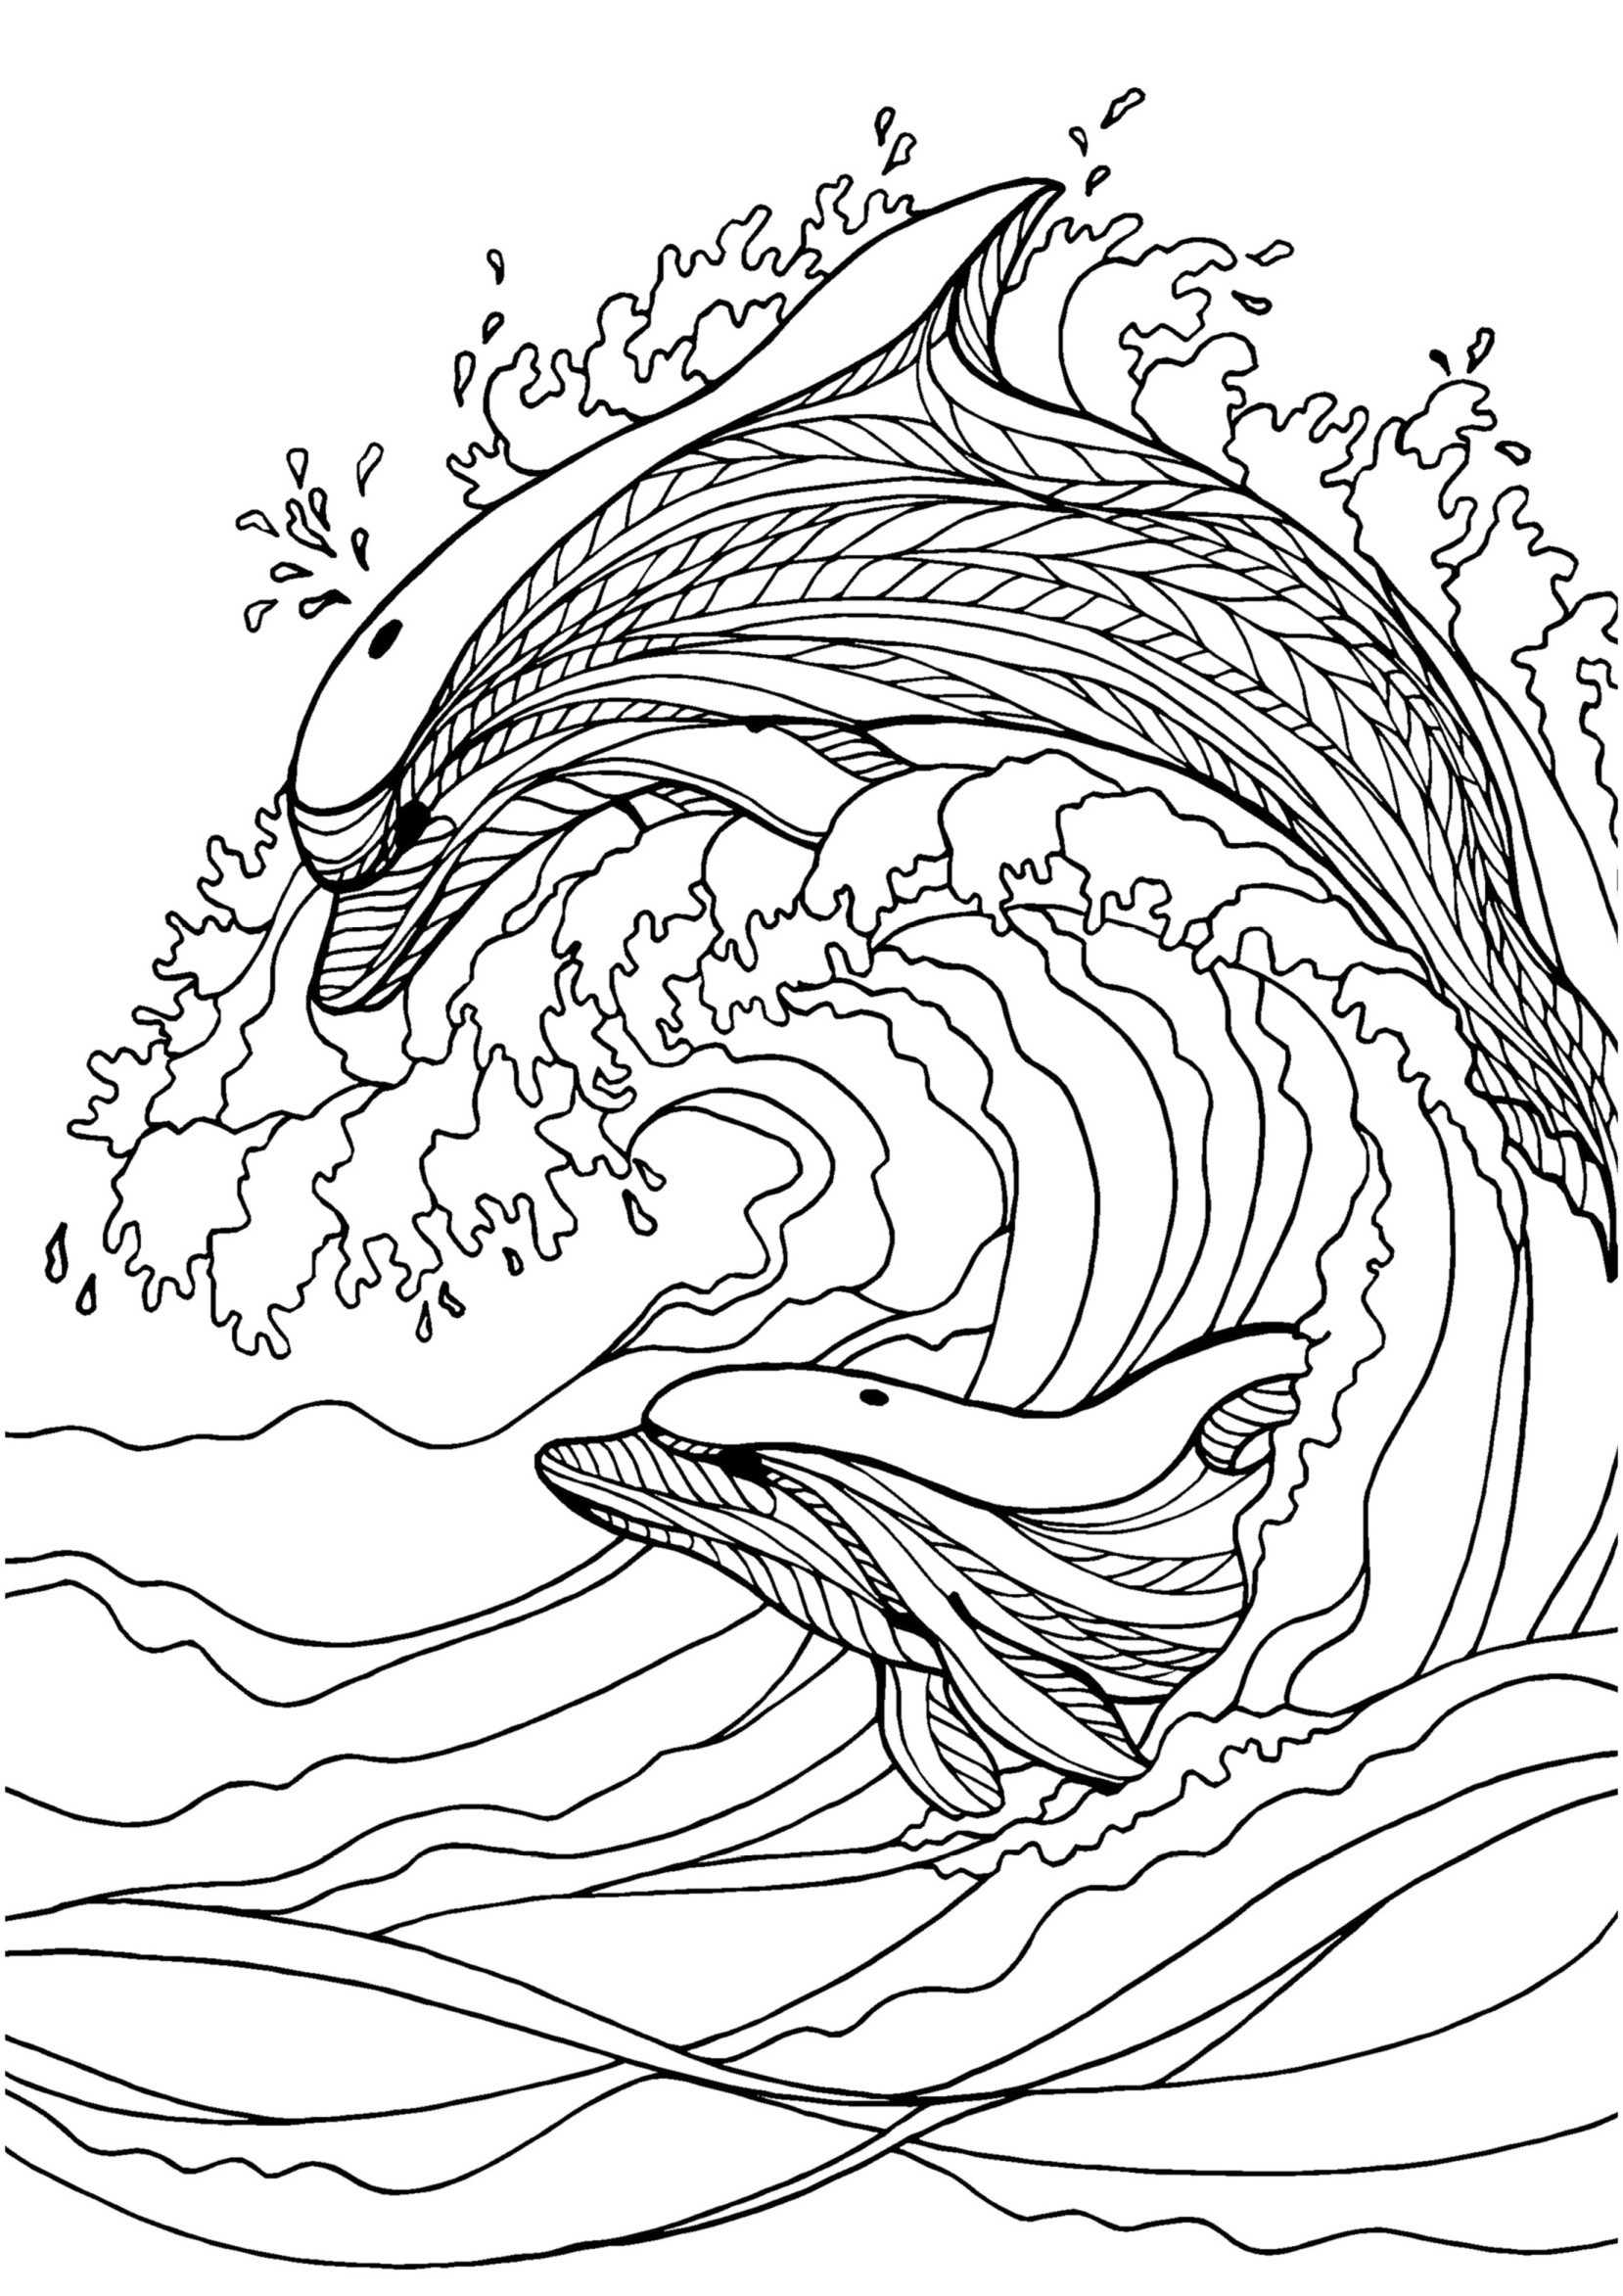 dolphin coloring pictures to print dolphin coloring pages coloring pictures to dolphin print